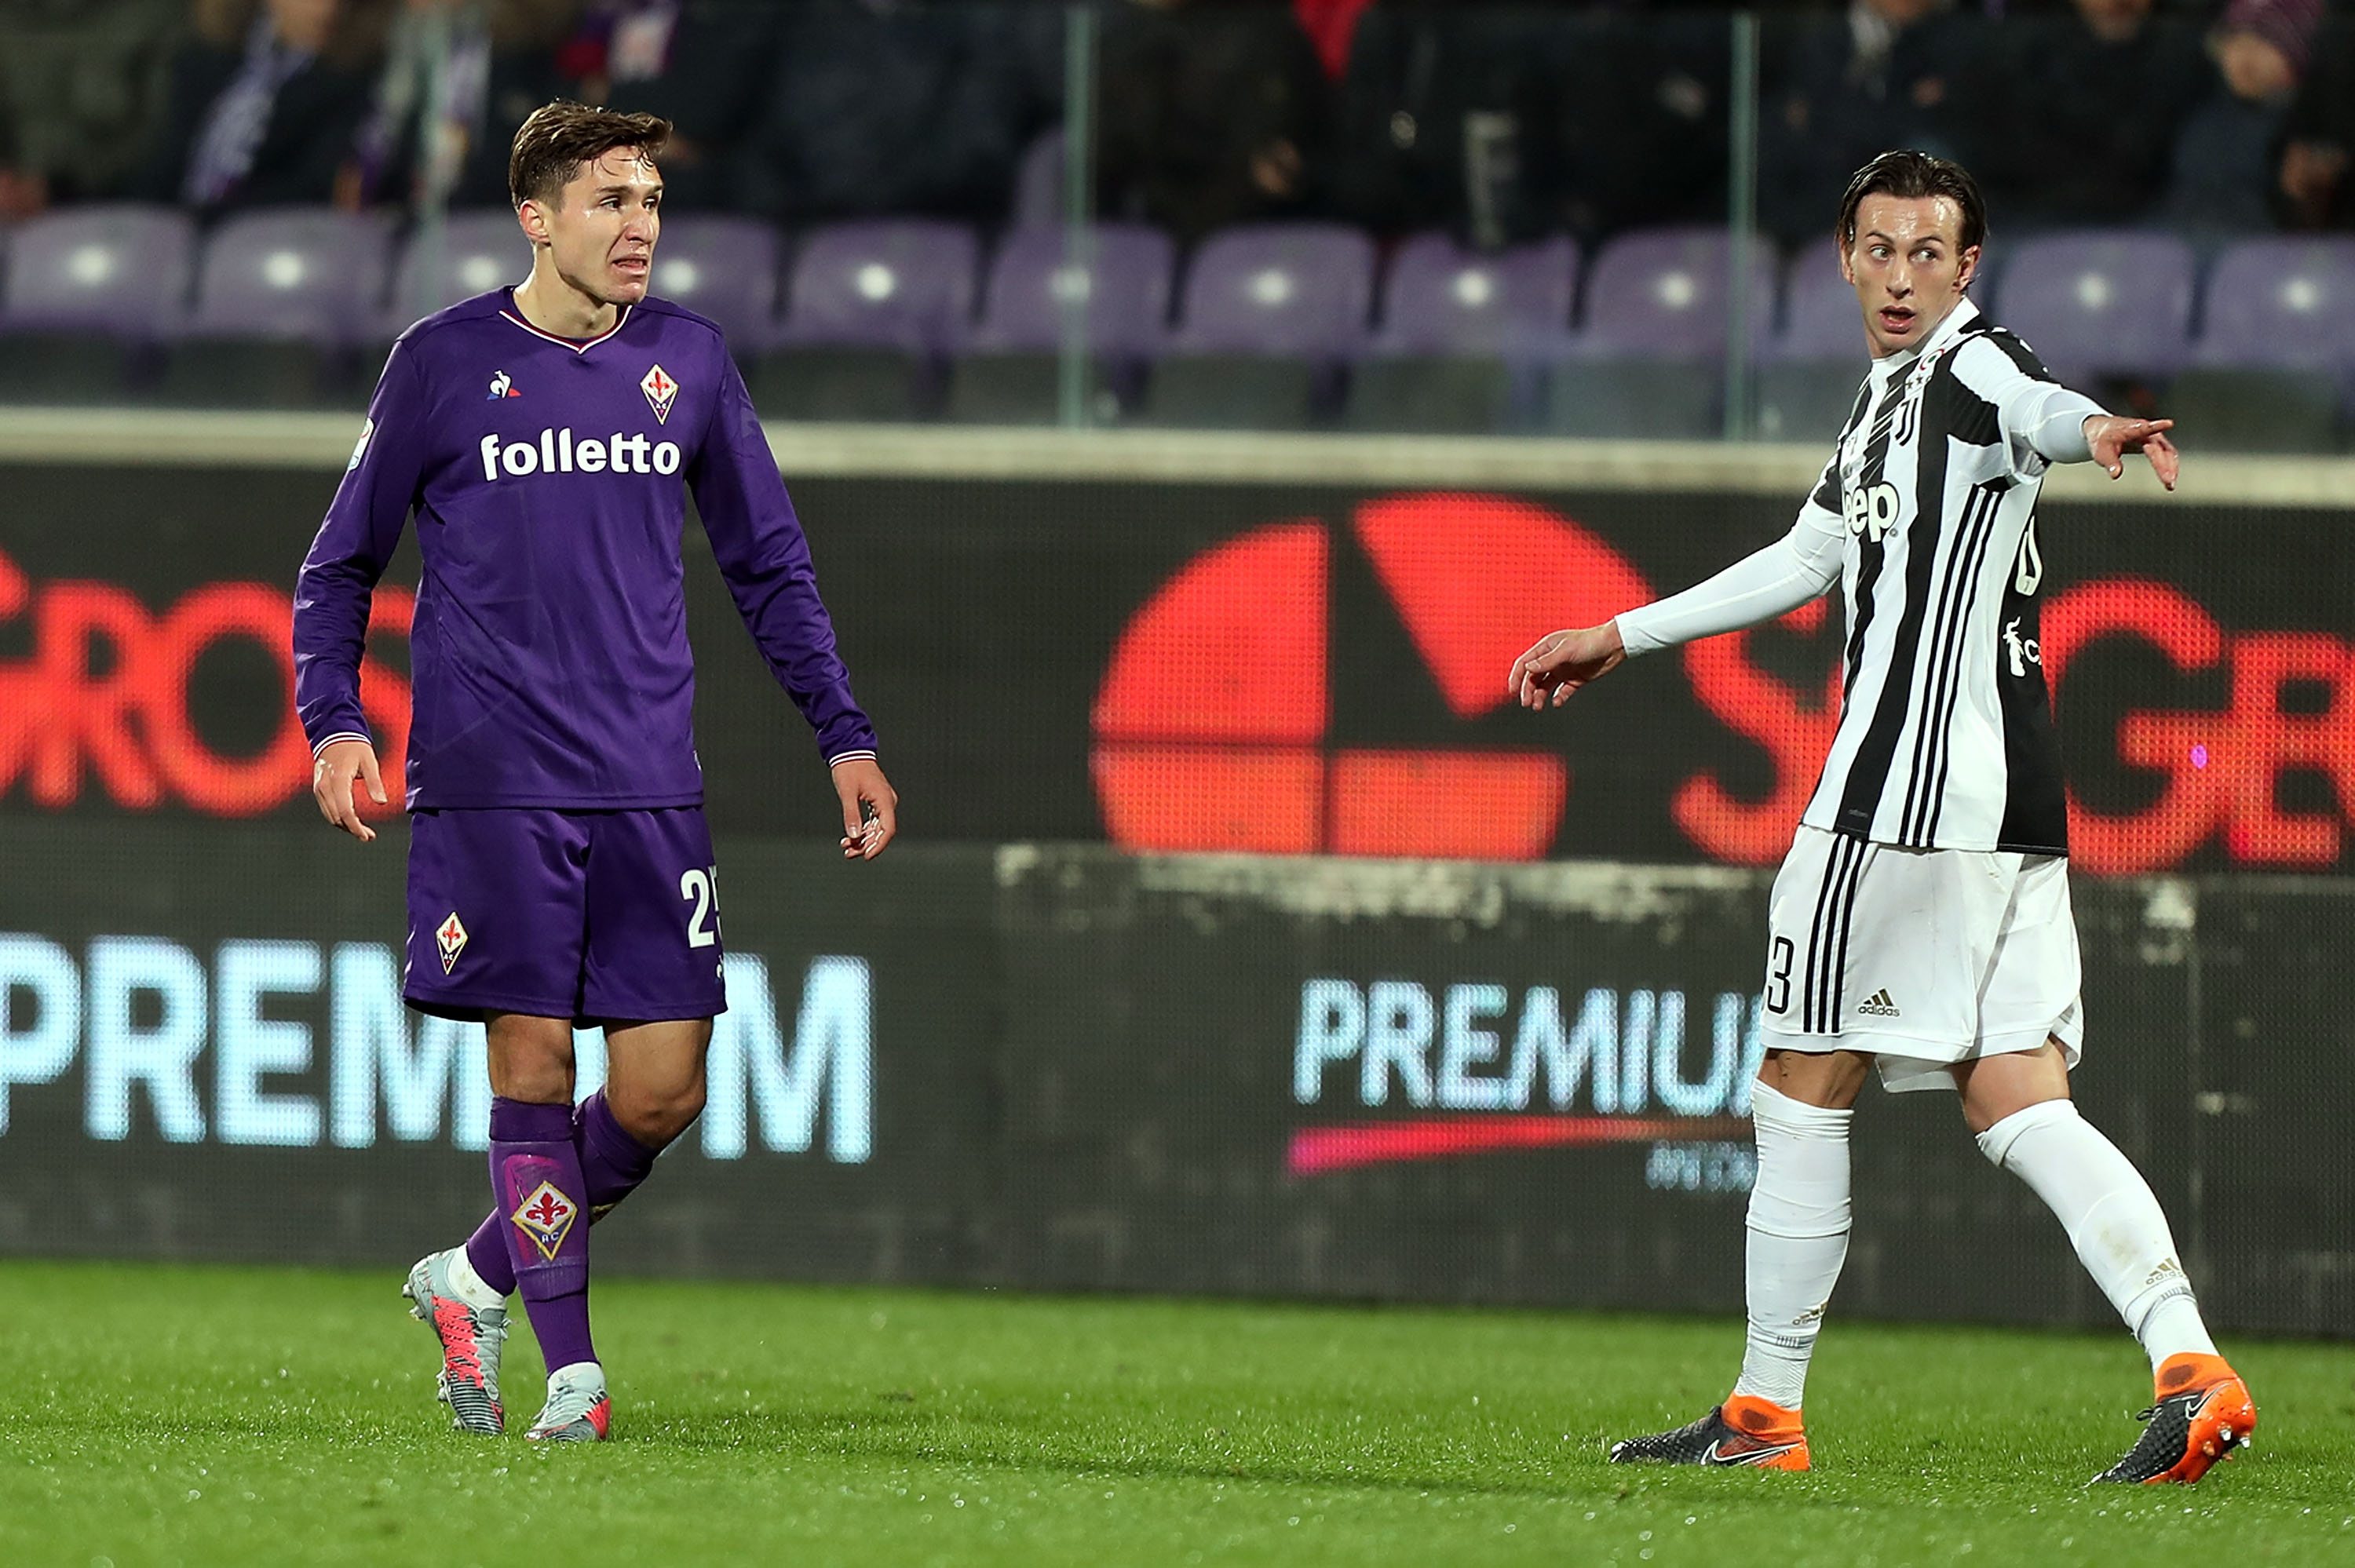 Federico Chiesa (l) has been dropping hints about his future.